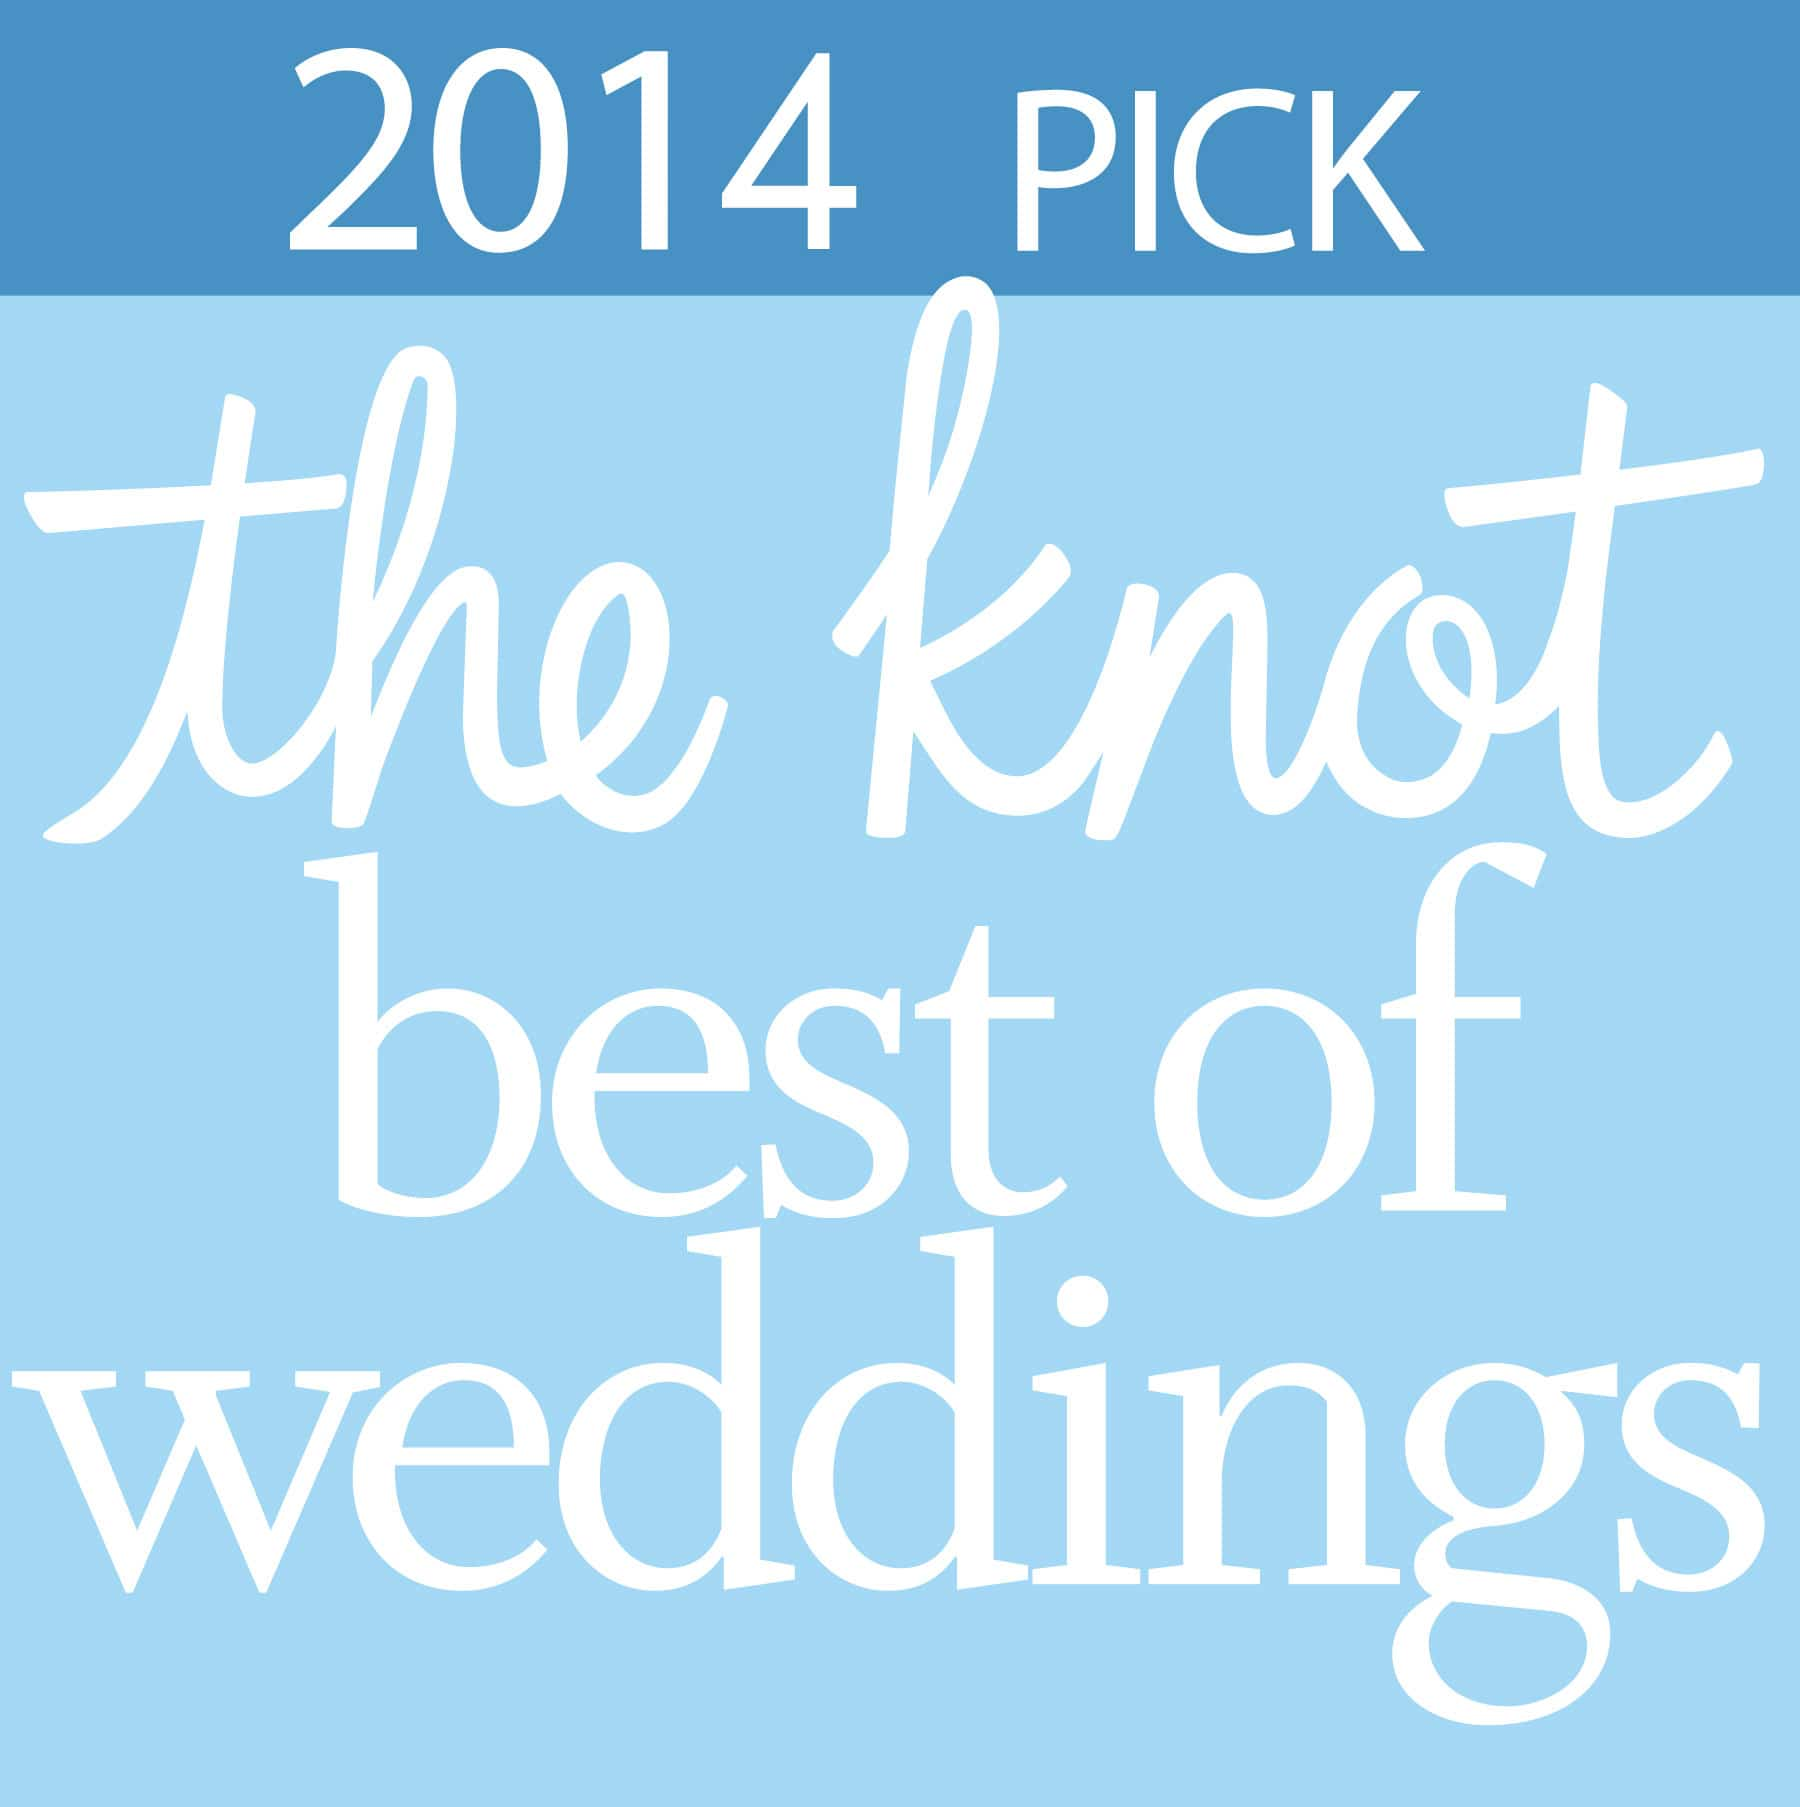 Knot best of weddings logo 2014